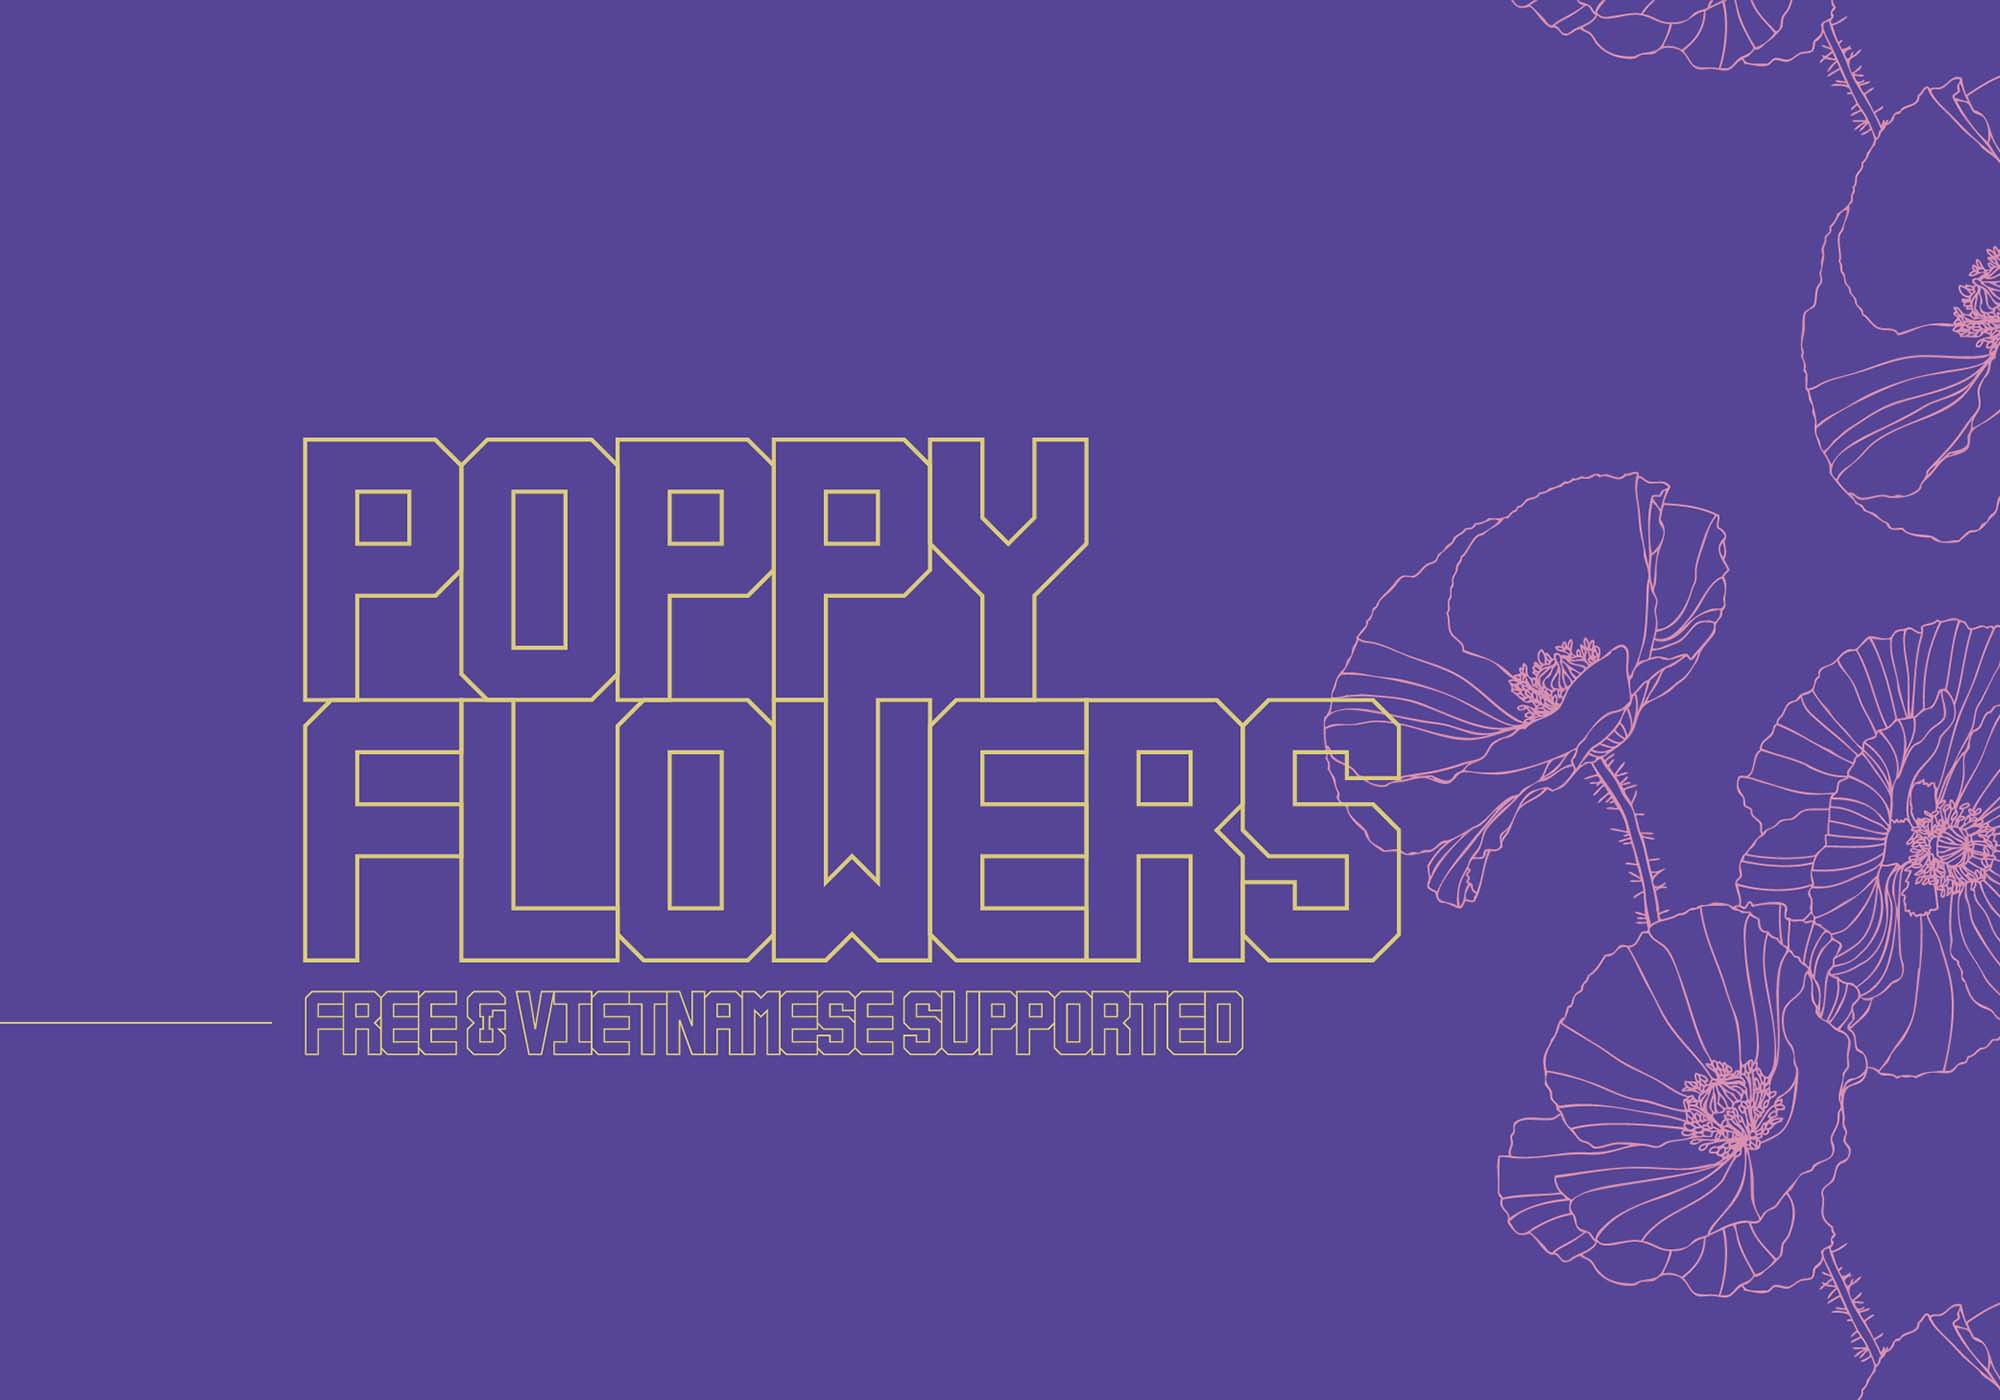 Poppy Flowers Typeface